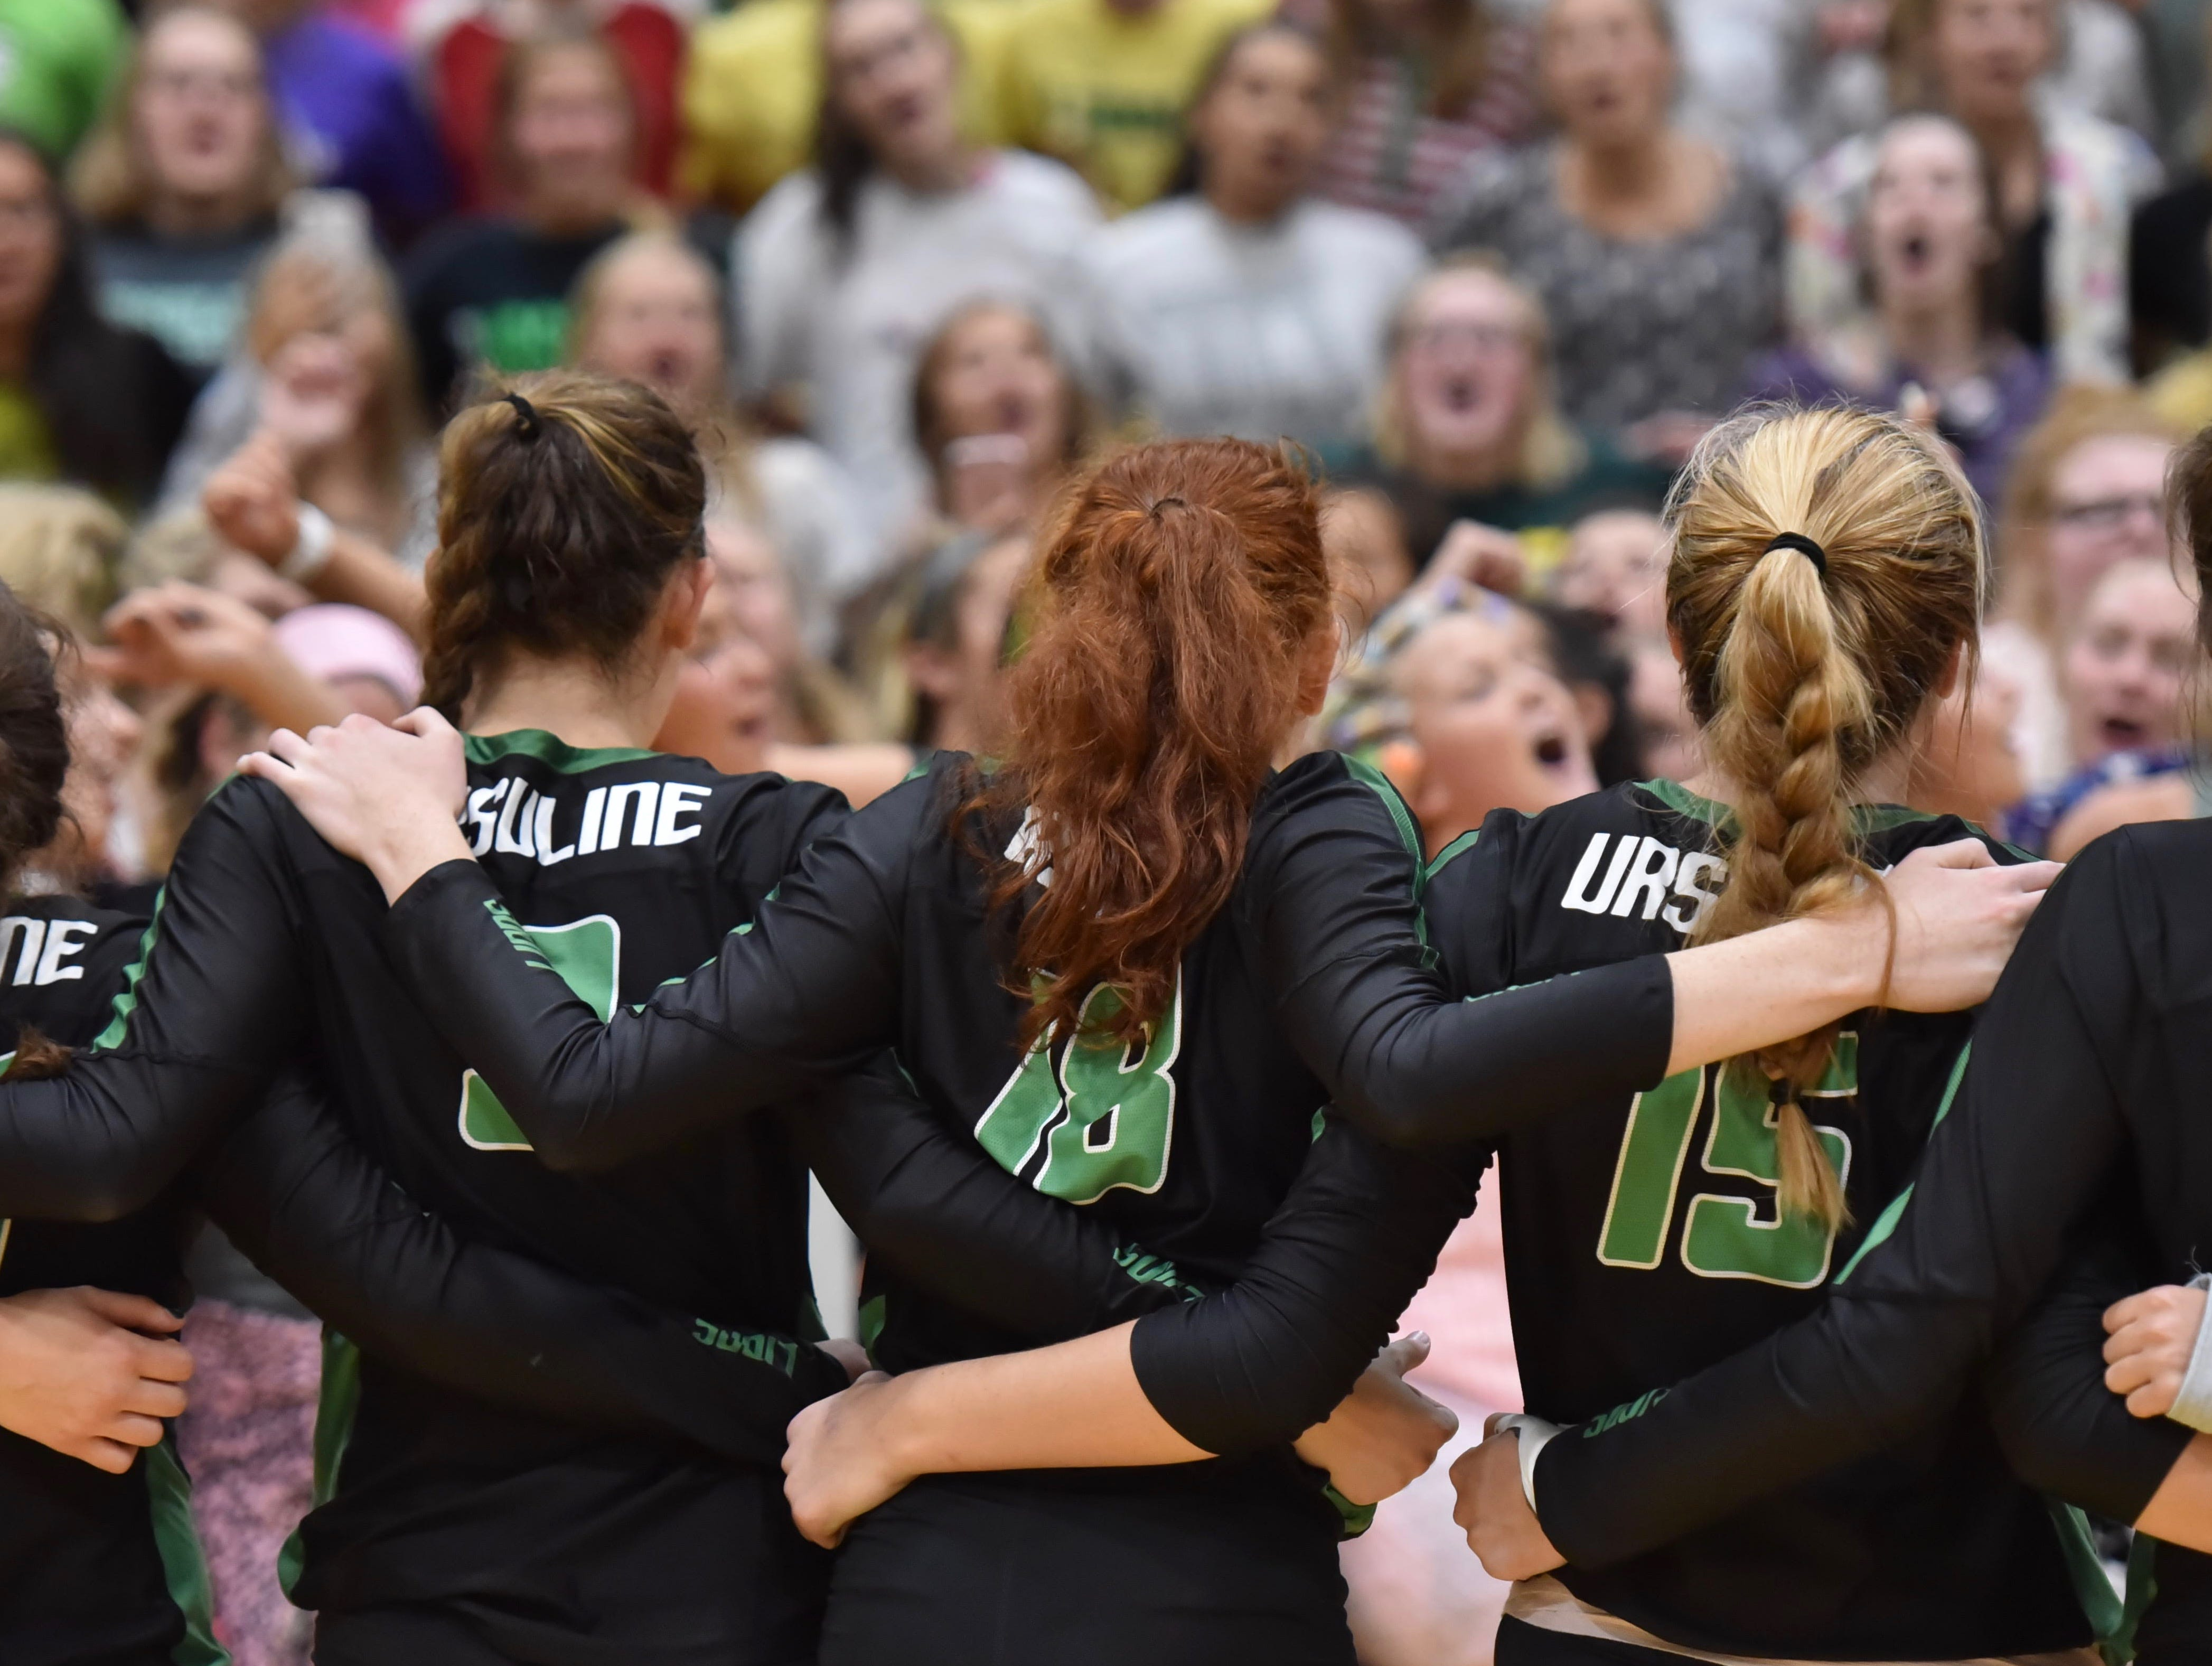 The Ursuline players celebrate with the students after defeating Mount Notre Dame three sets to twoTuesday, Sept. 11, 2018 at Ursuline Academy